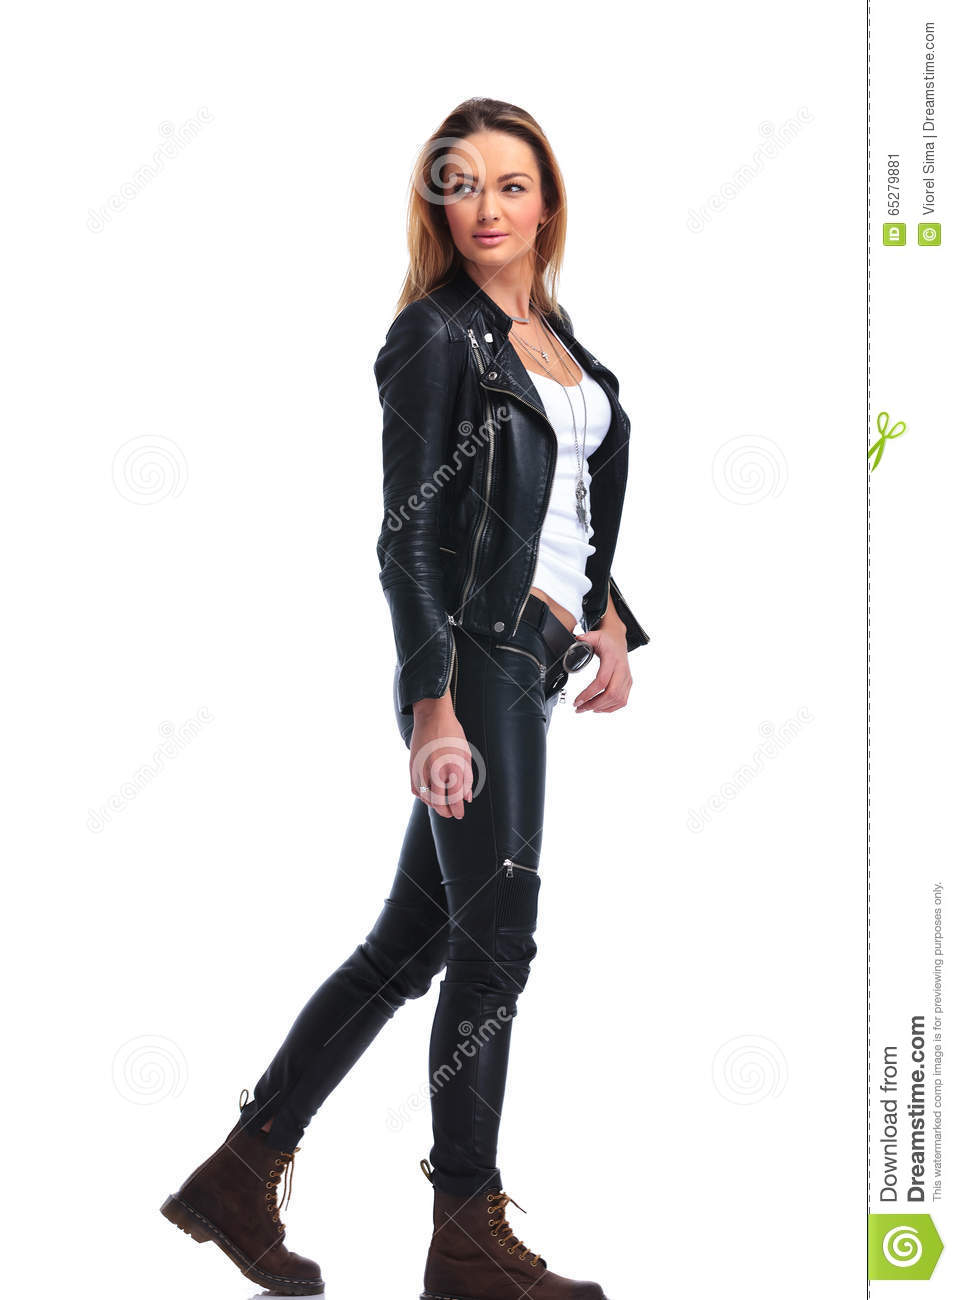 Cute leather jackets for girls